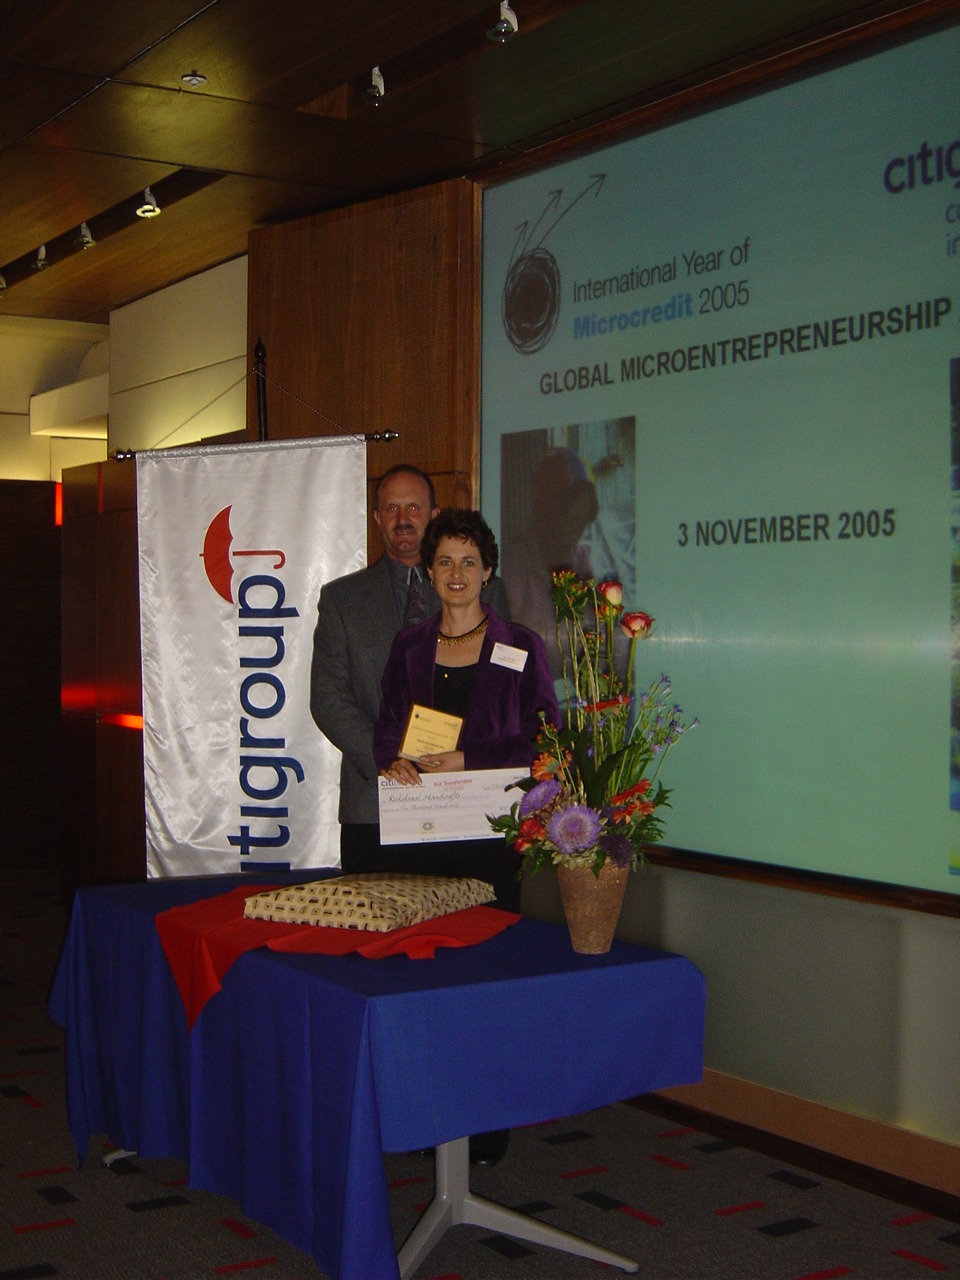 08. Winning the Citigroup competition